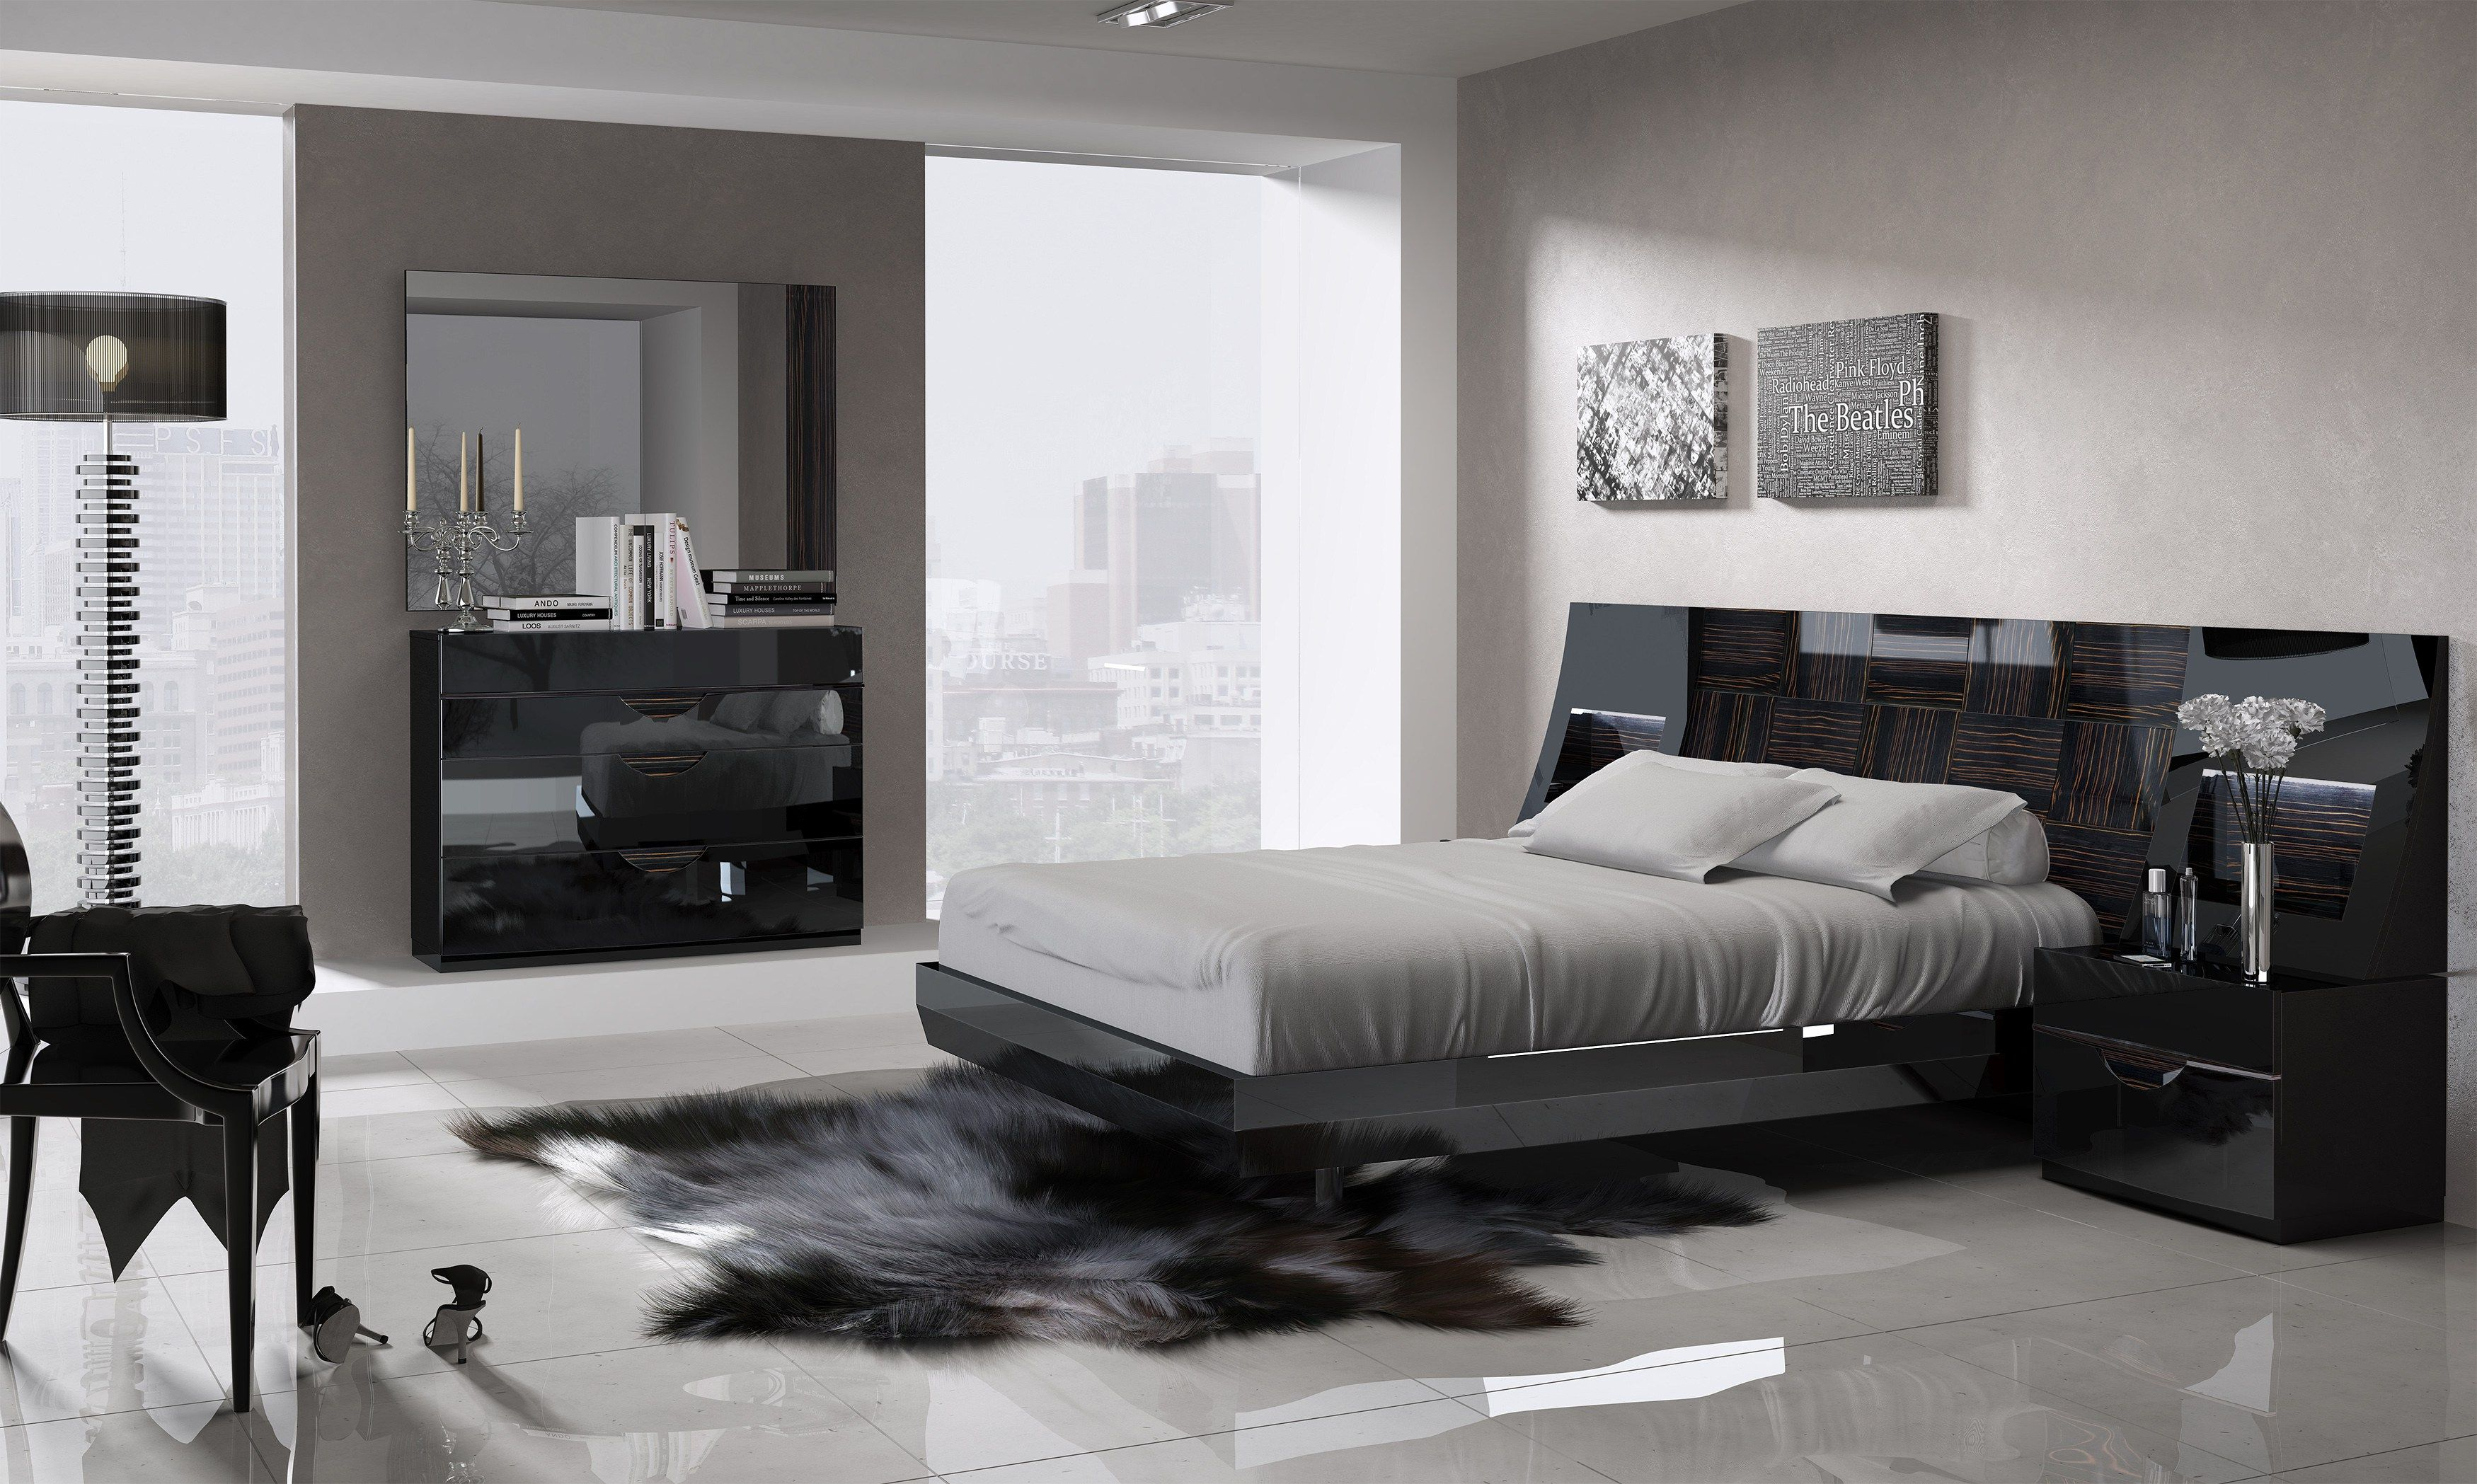 Marbella Platform Bedroom In Black High Gloss Lacquer Finish With Regard To Black Lacquer Bedroom Luxurious Bedrooms Remodel Bedroom Luxury Bedroom Inspiration